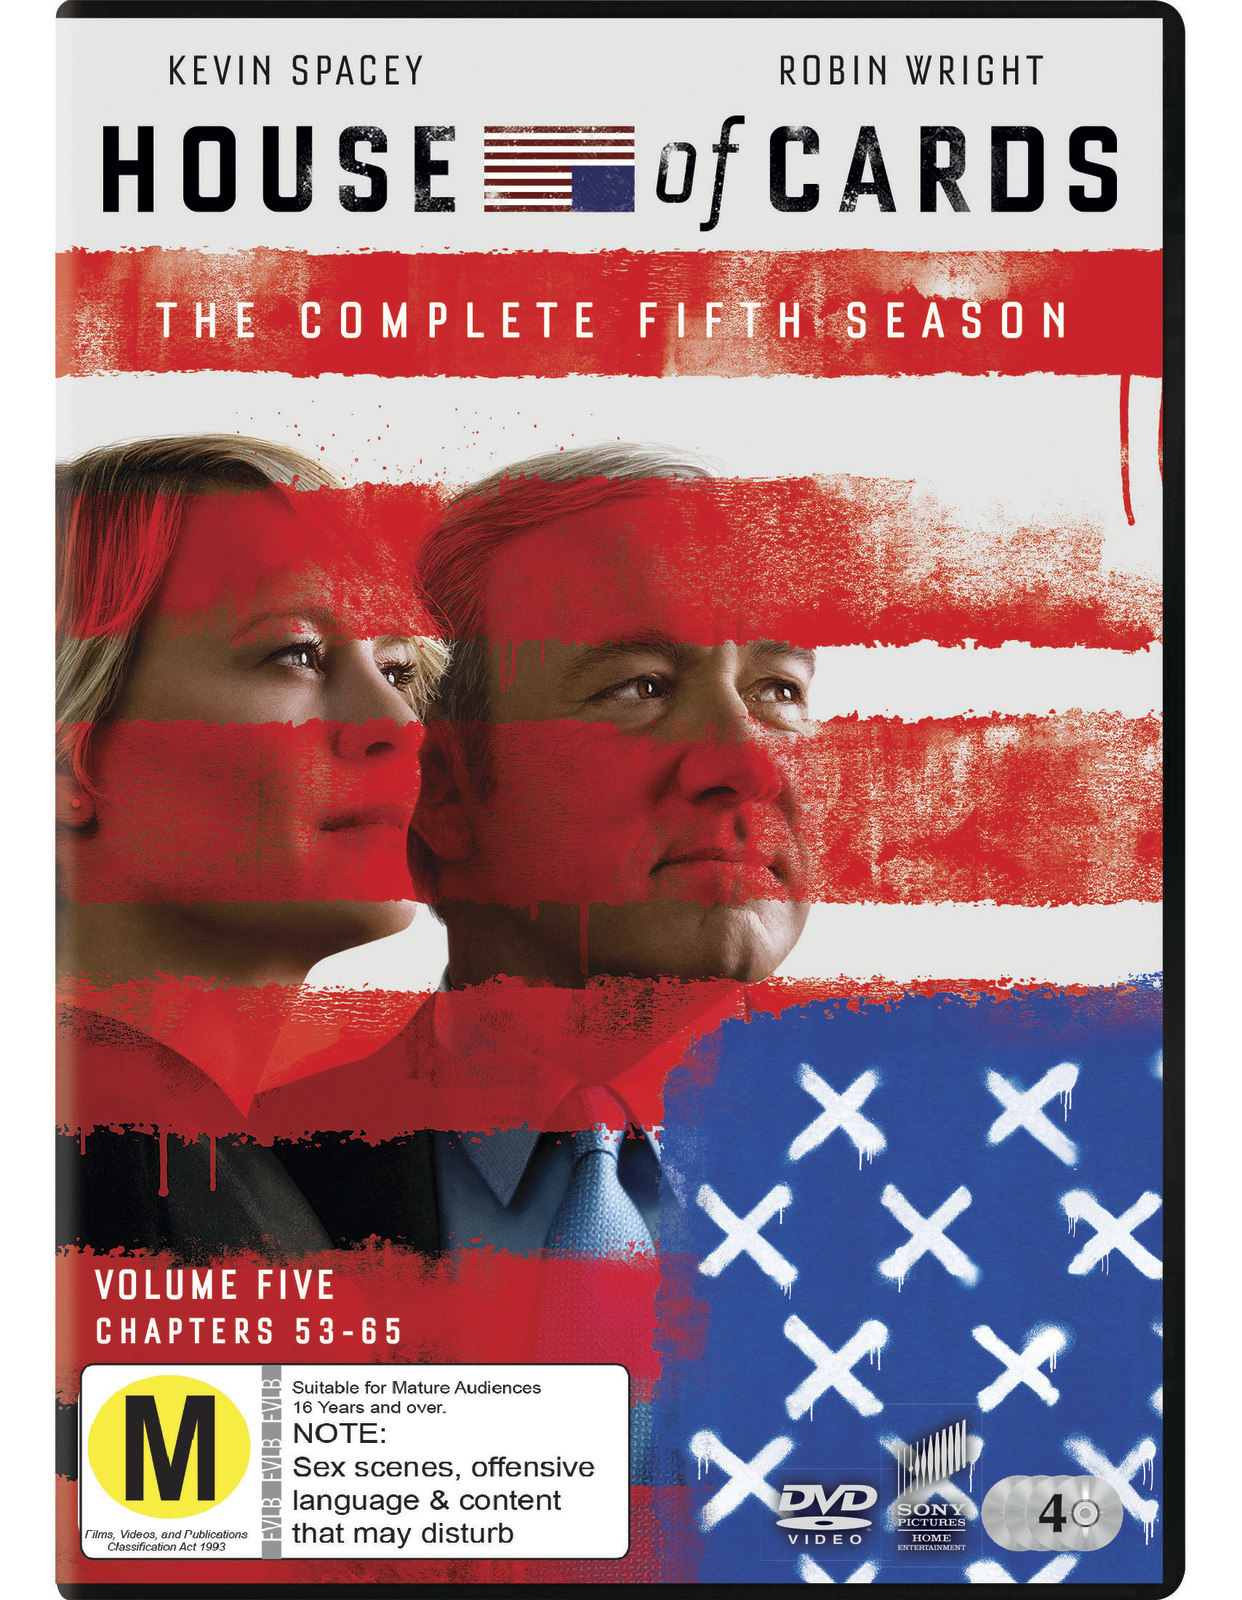 House of Cards - The Complete Fifth Season on DVD image